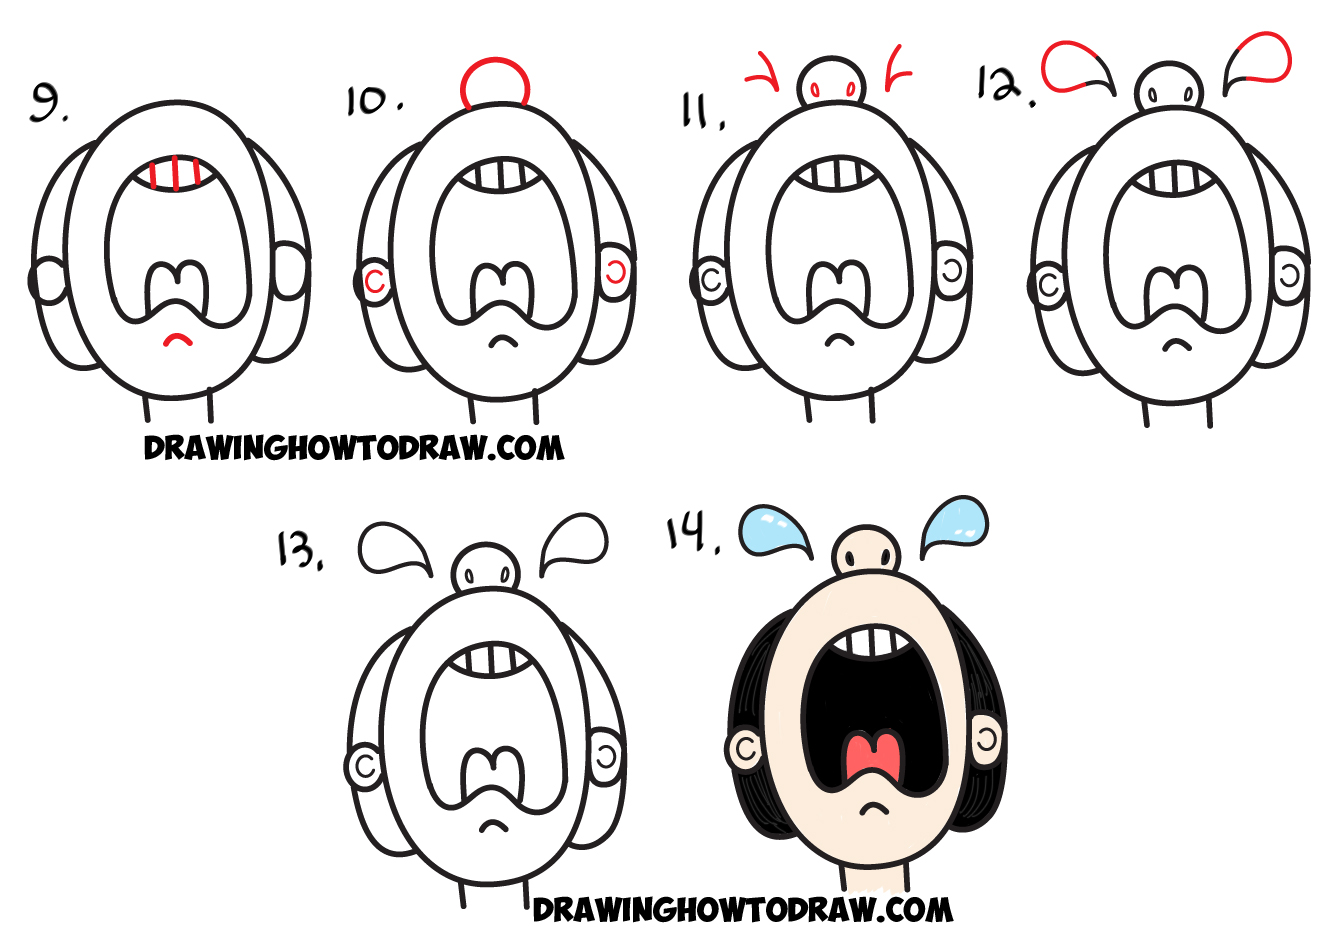 learn how to draw crying cartoon character from the word cry word toon in simple